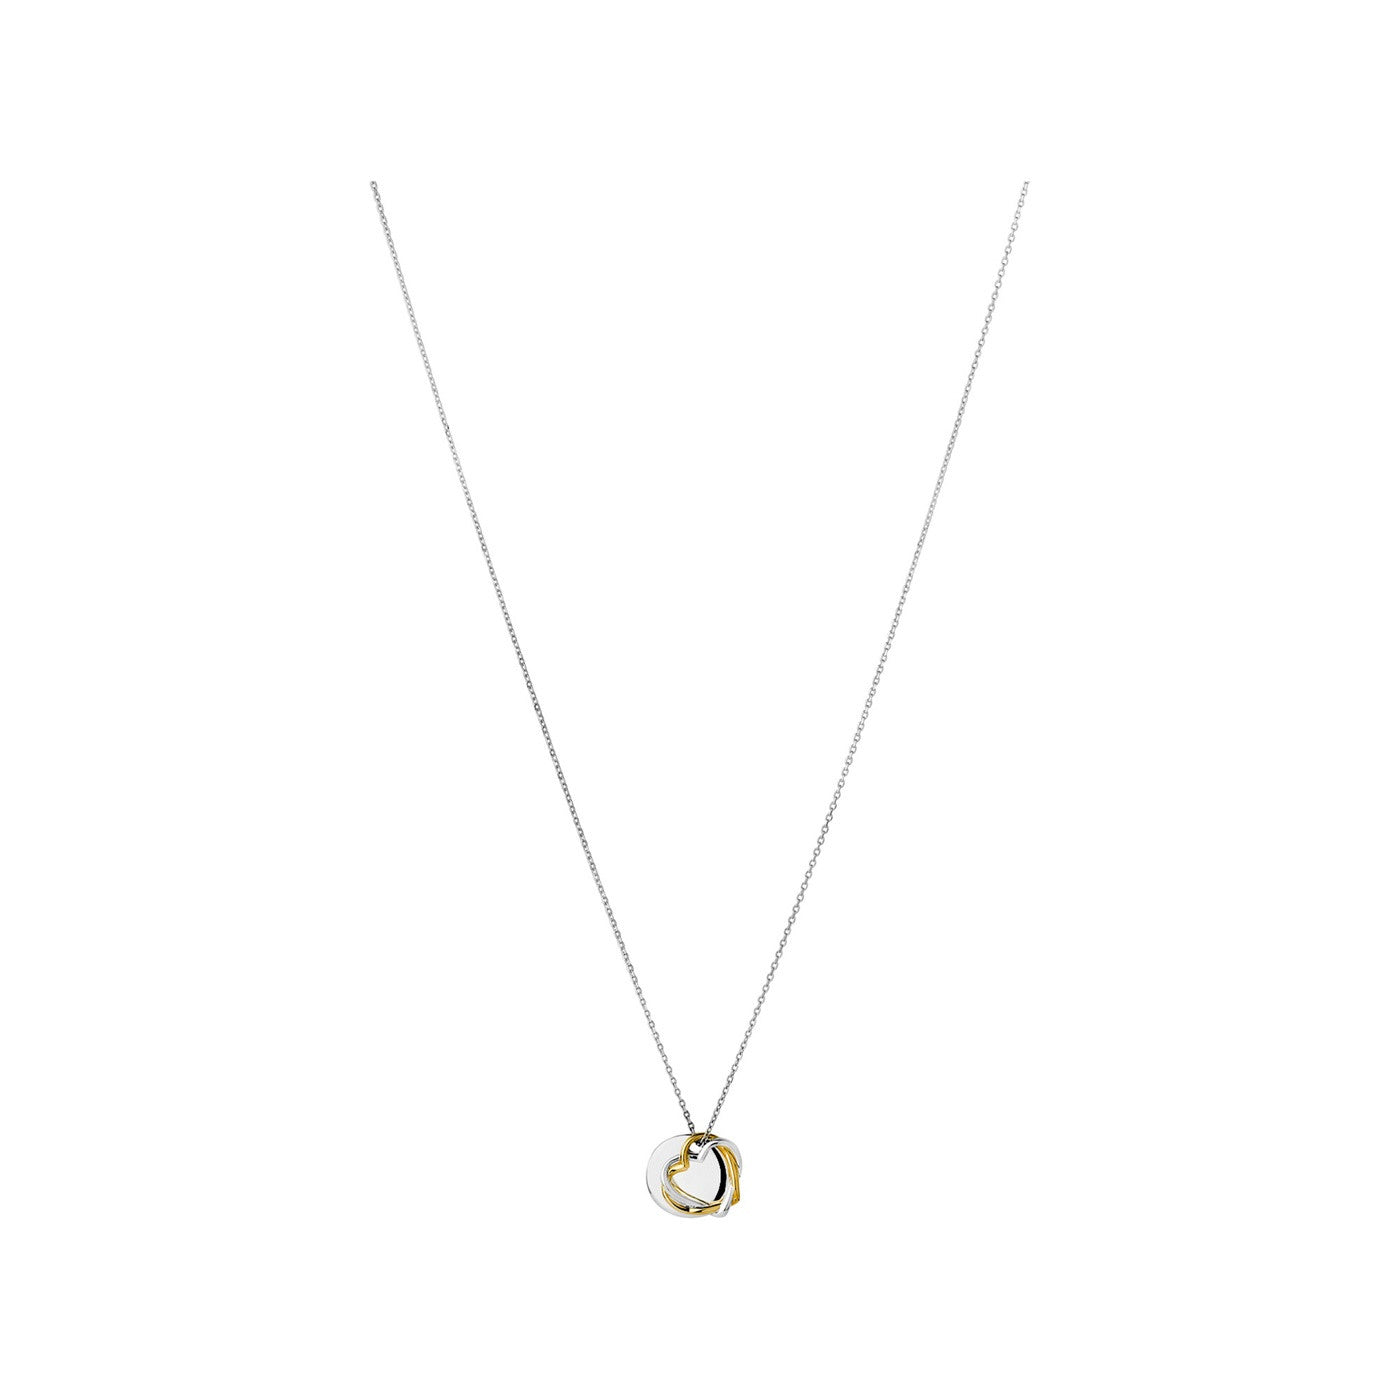 Links of London Kindred Soul Disc Yellow Gold Pendant Necklace - 5024.1311